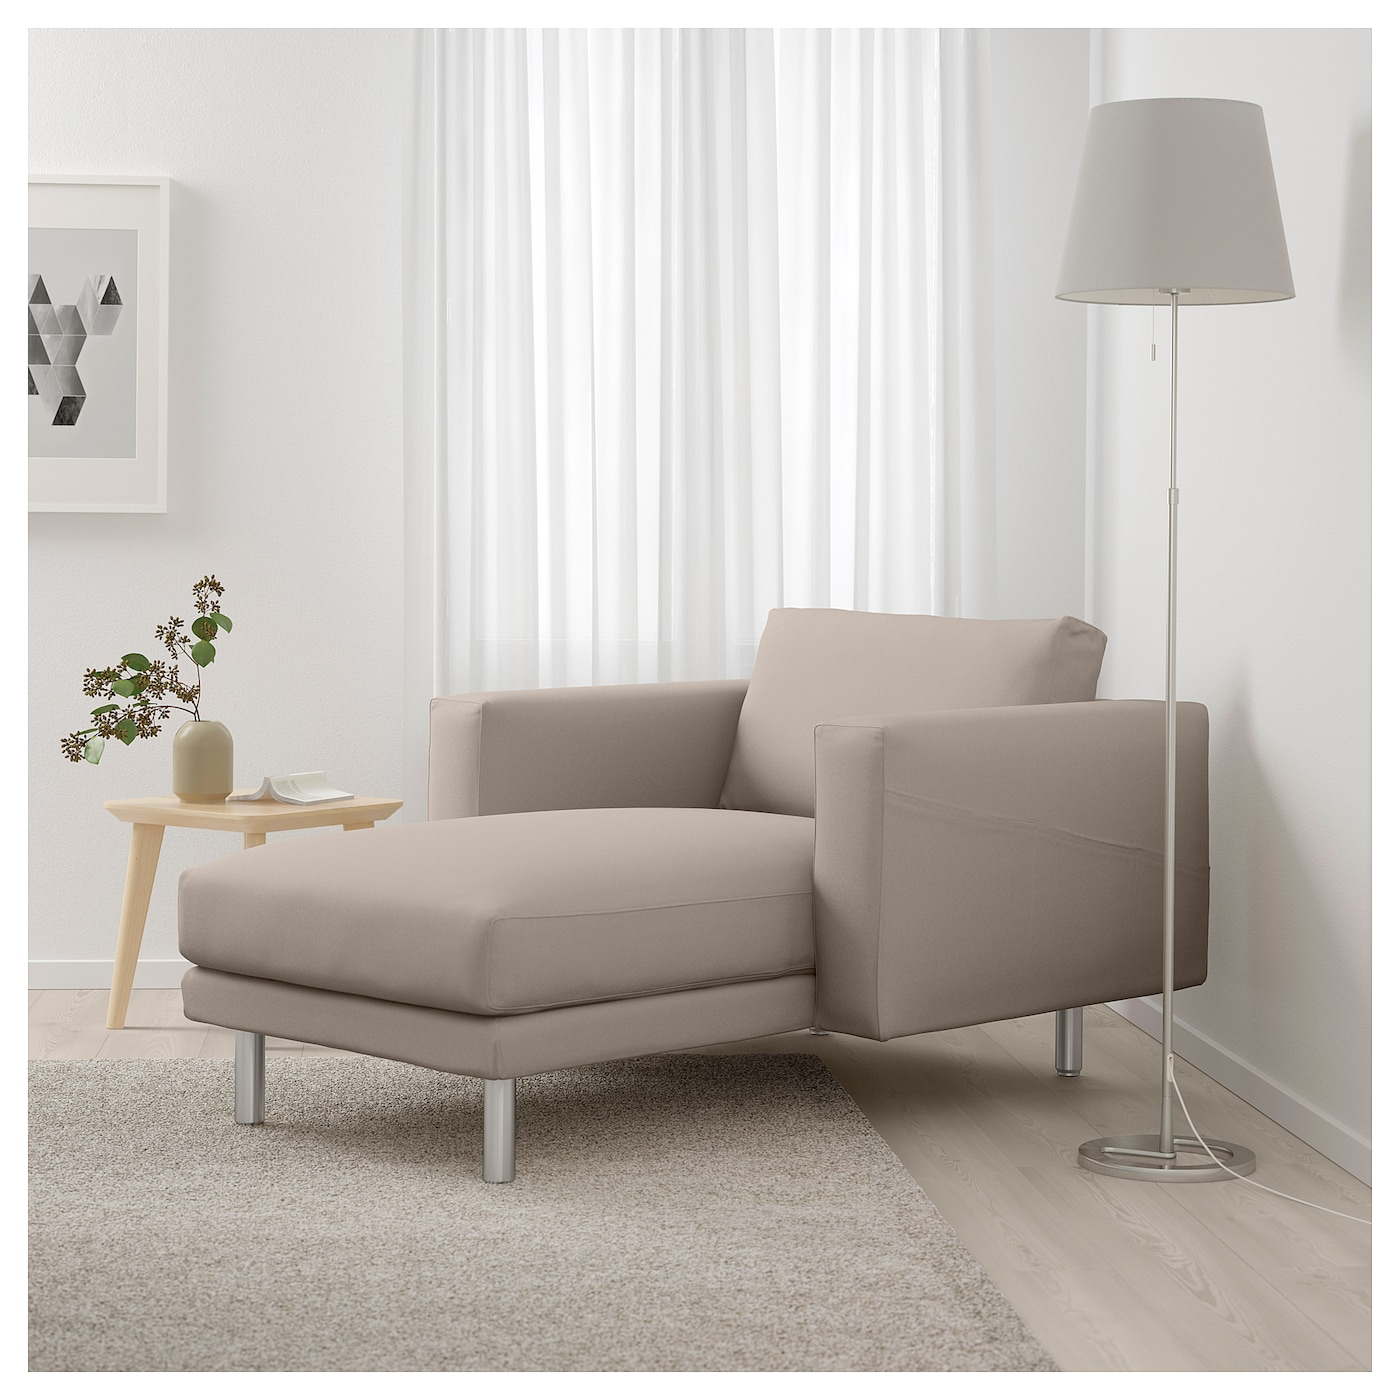 norsborg chaise longue gr sbo beige metal ikea. Black Bedroom Furniture Sets. Home Design Ideas